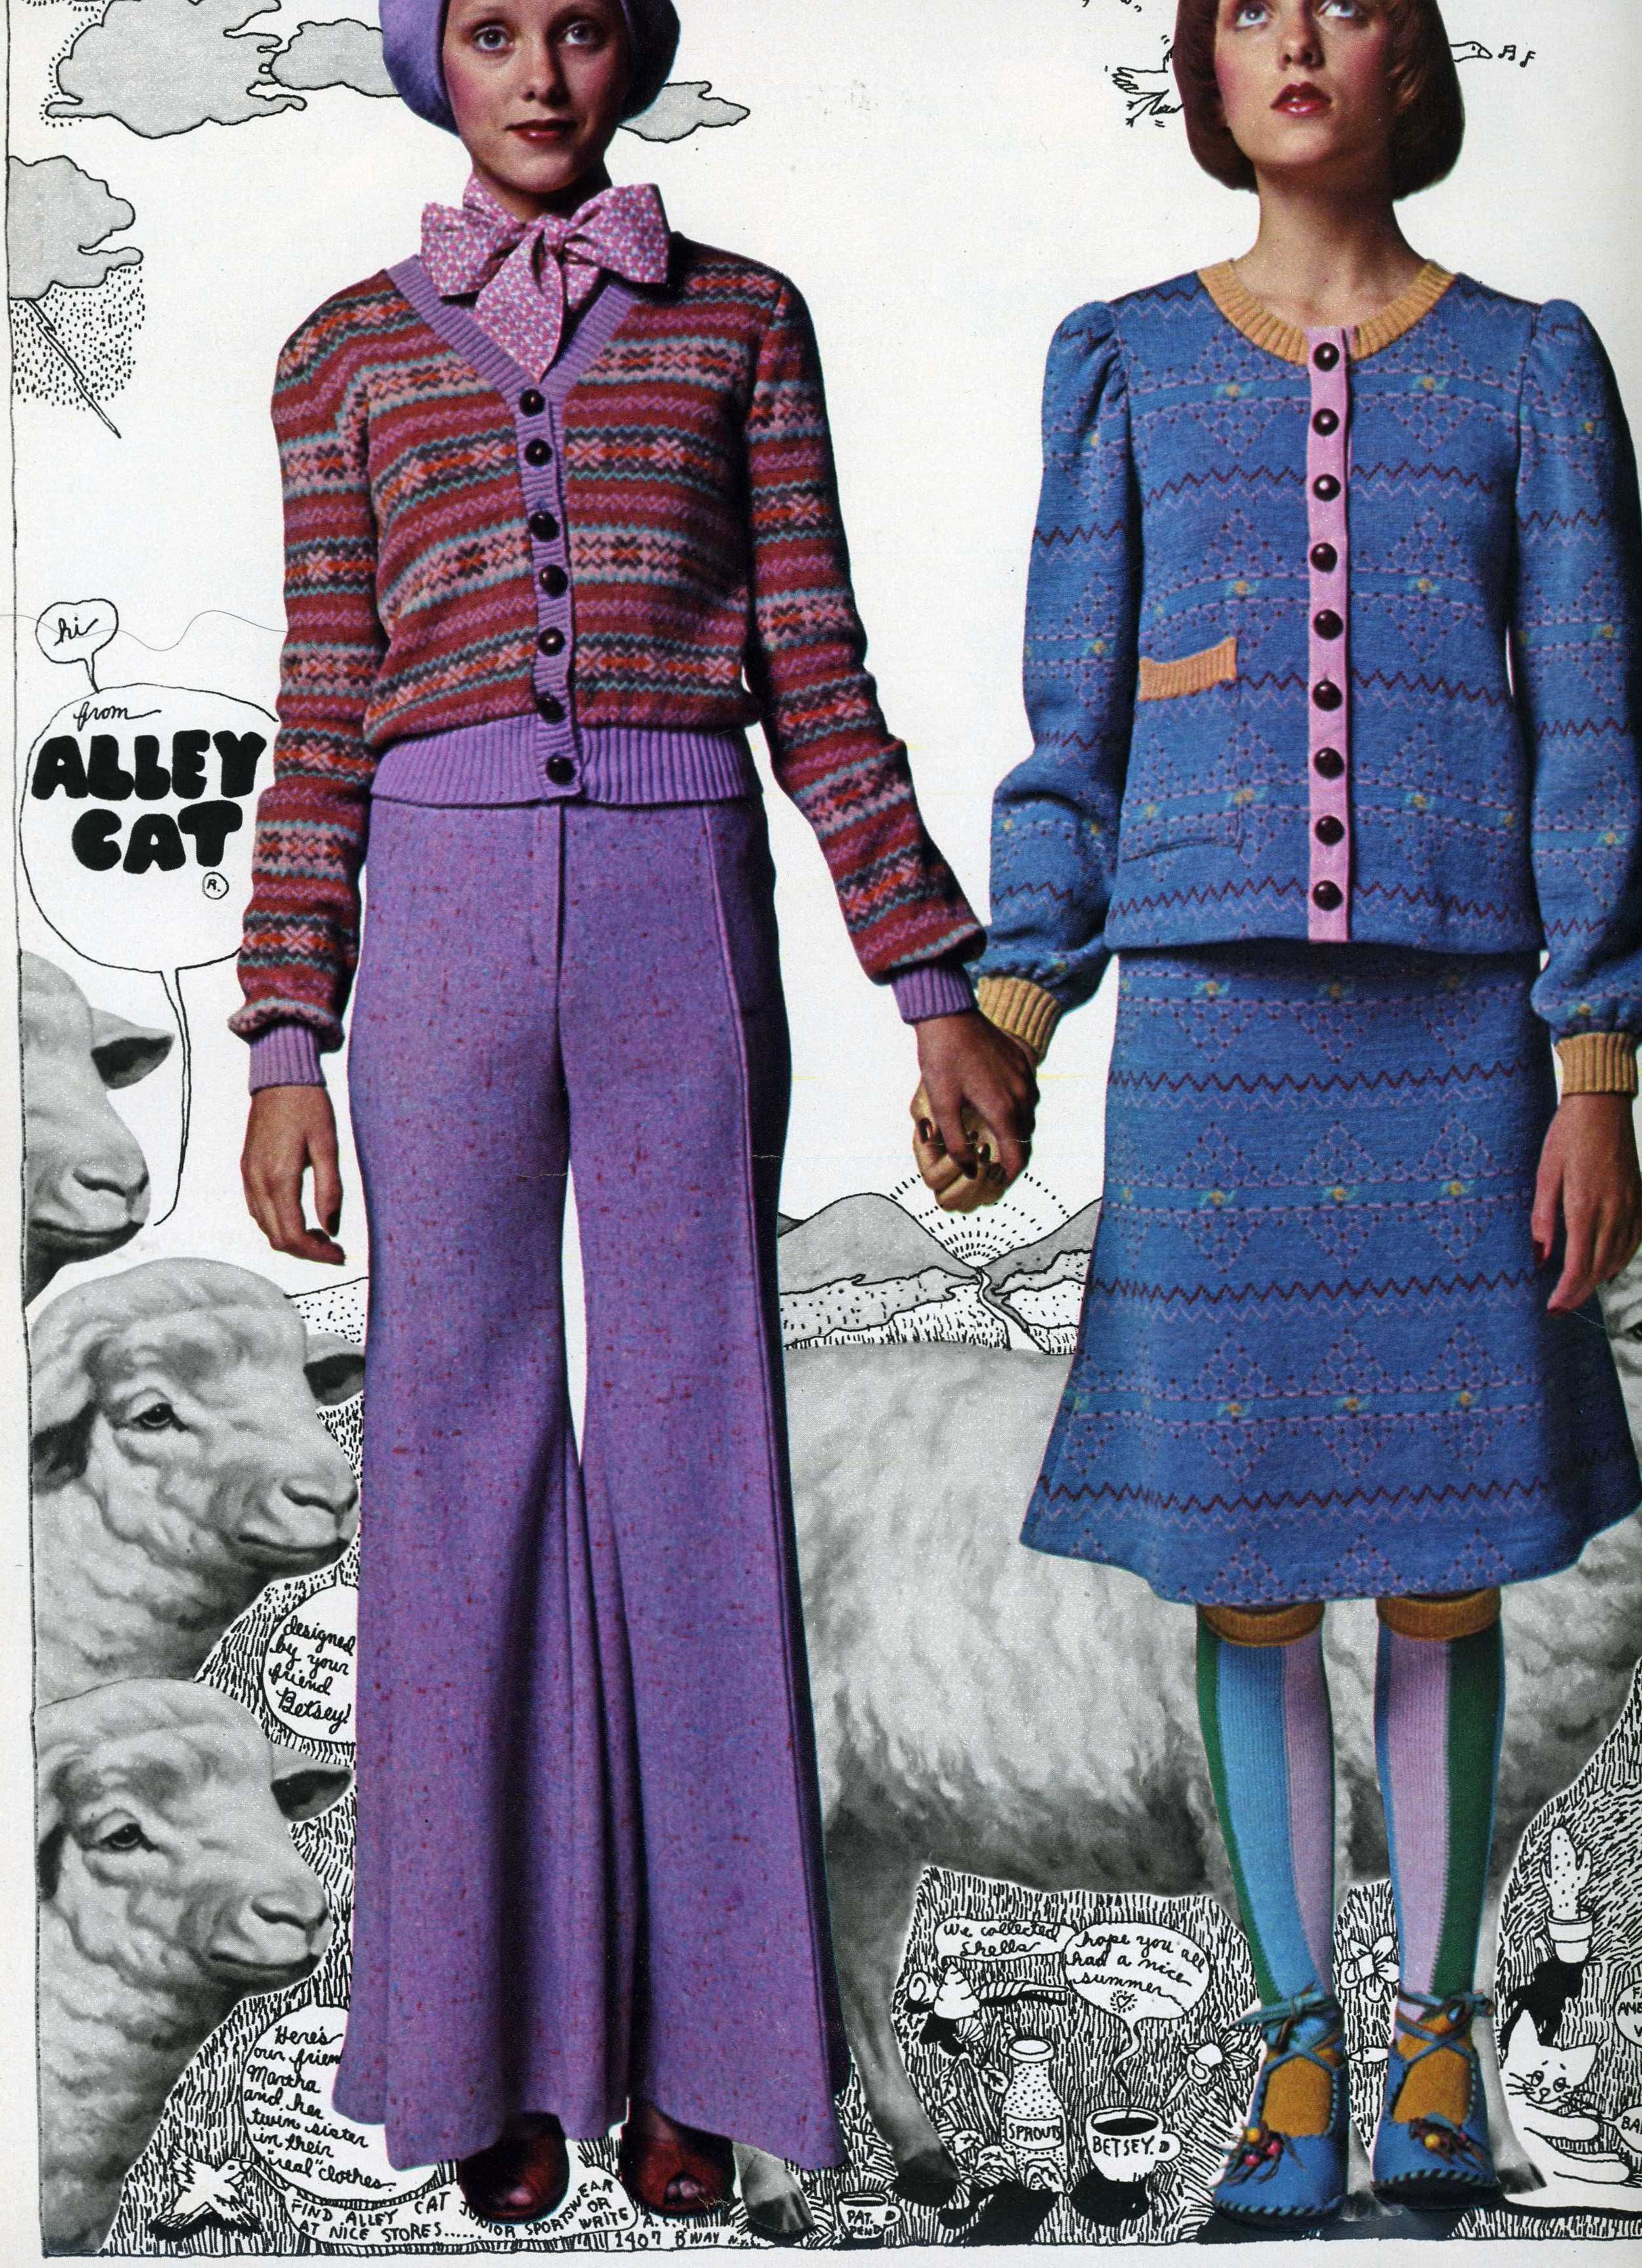 Alley Cat from Betsey Johnson. Early 1970s, Seventeen magazine.